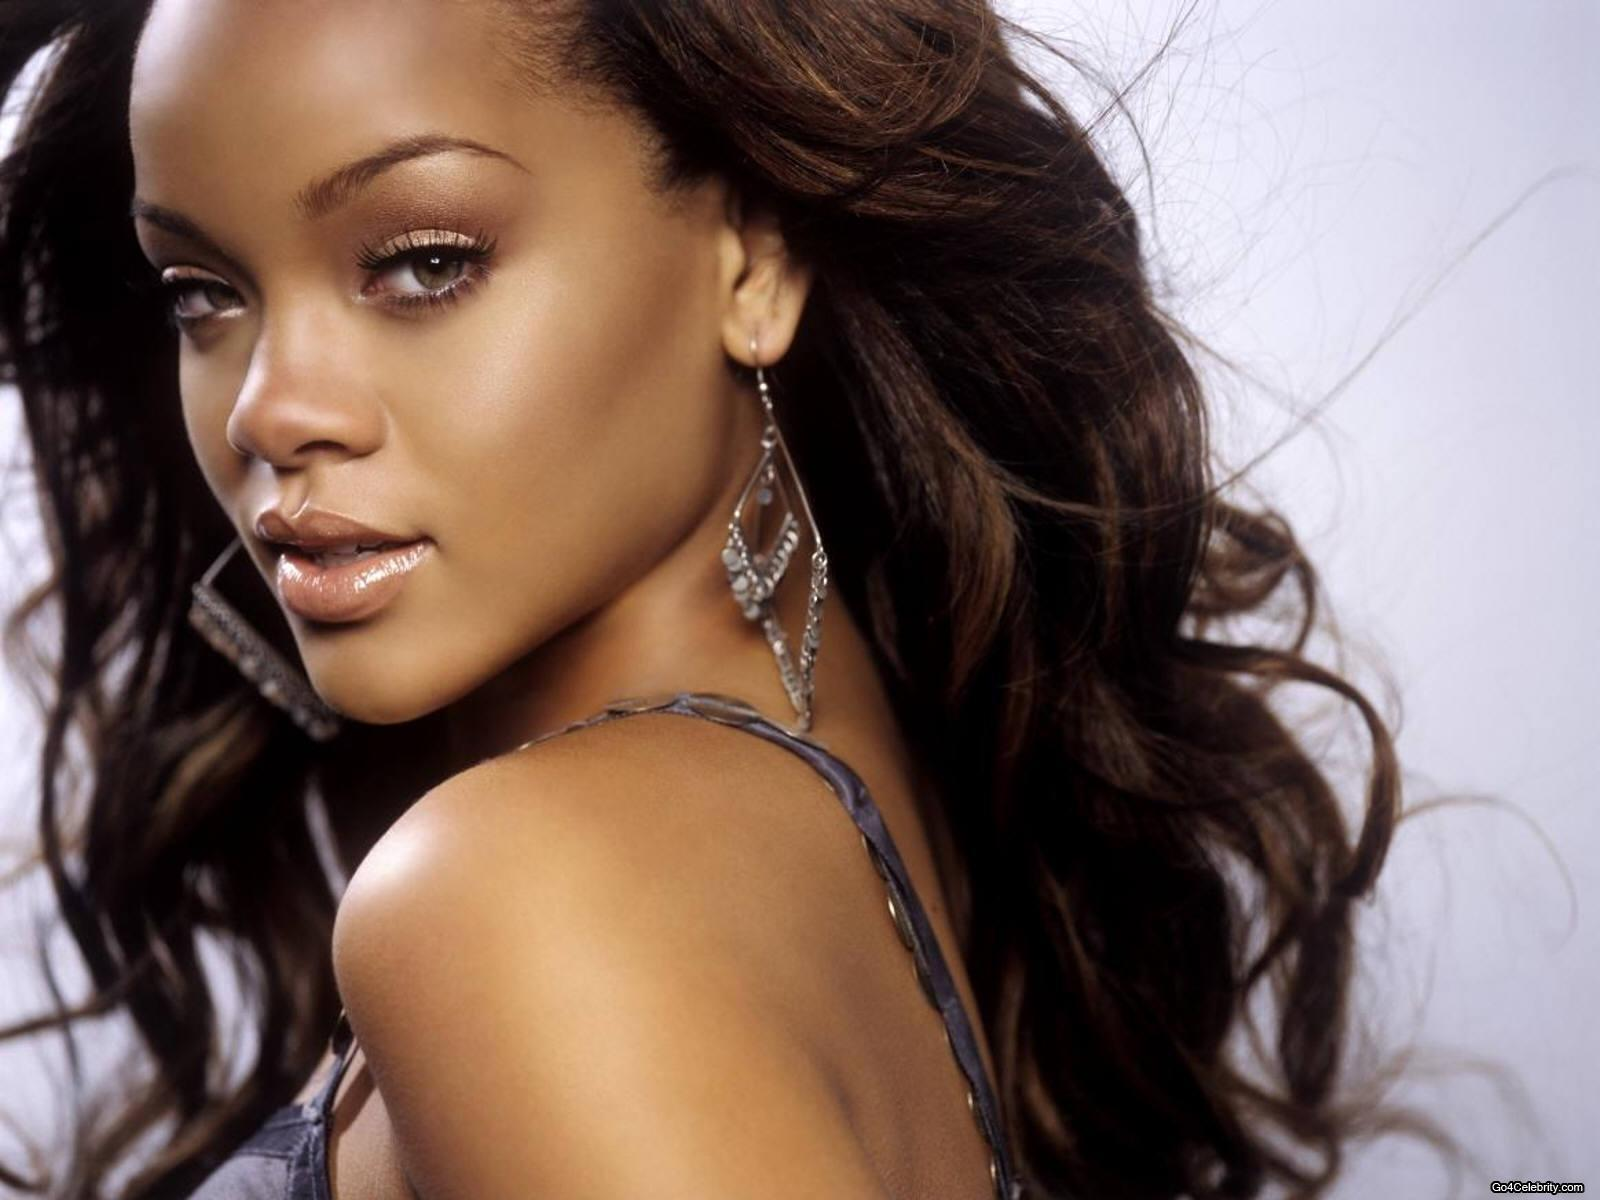 http://images2.fanpop.com/images/photos/6800000/Rihanna-rihanna-6848270-1600-1200.jpg